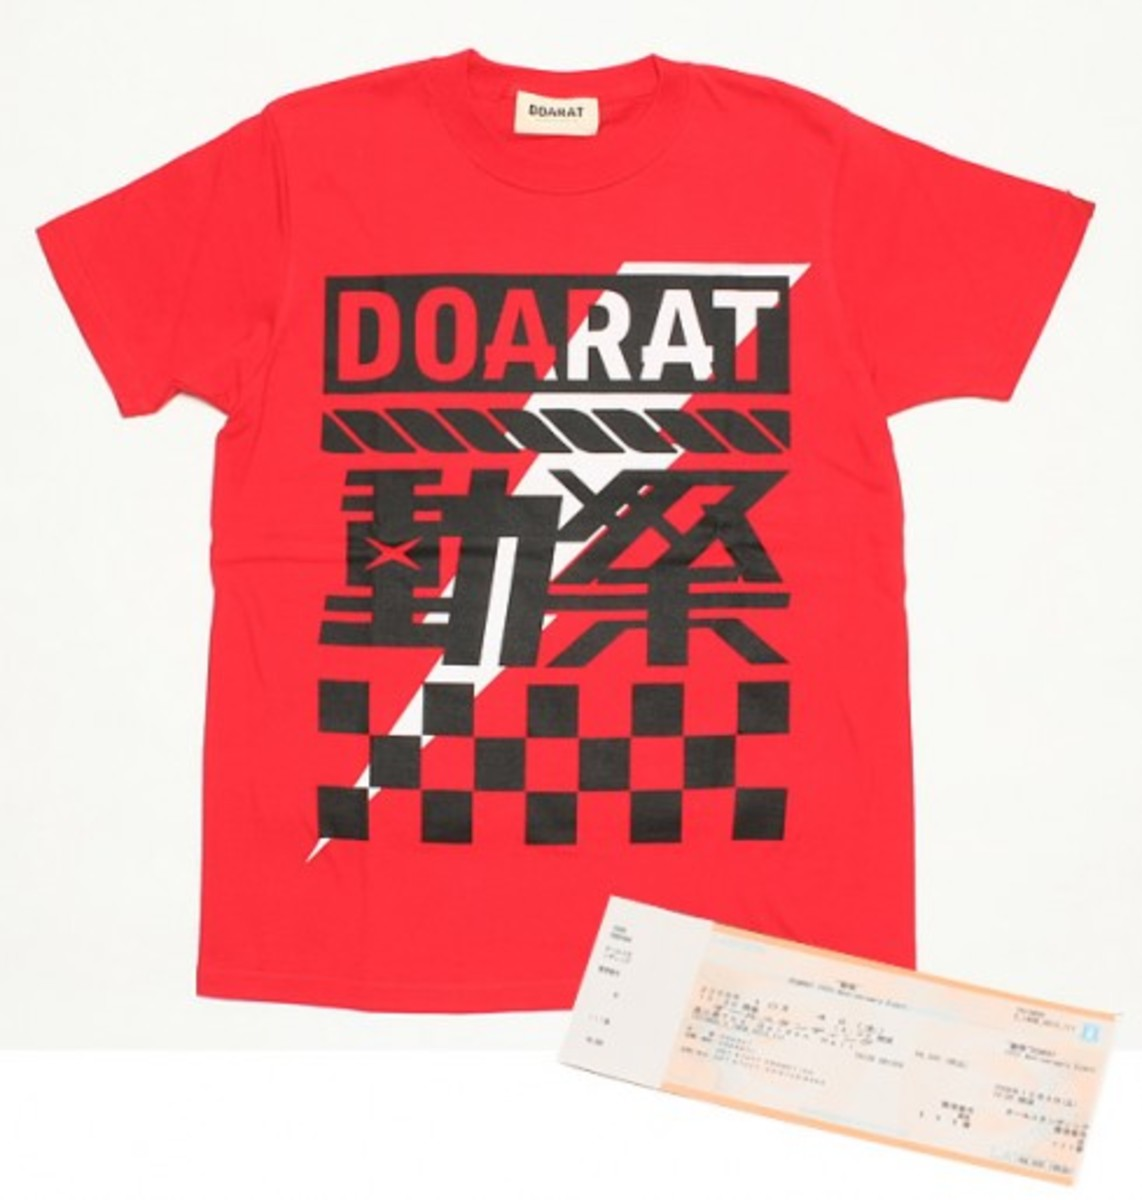 DOARAT - 10th Anniversary Collection